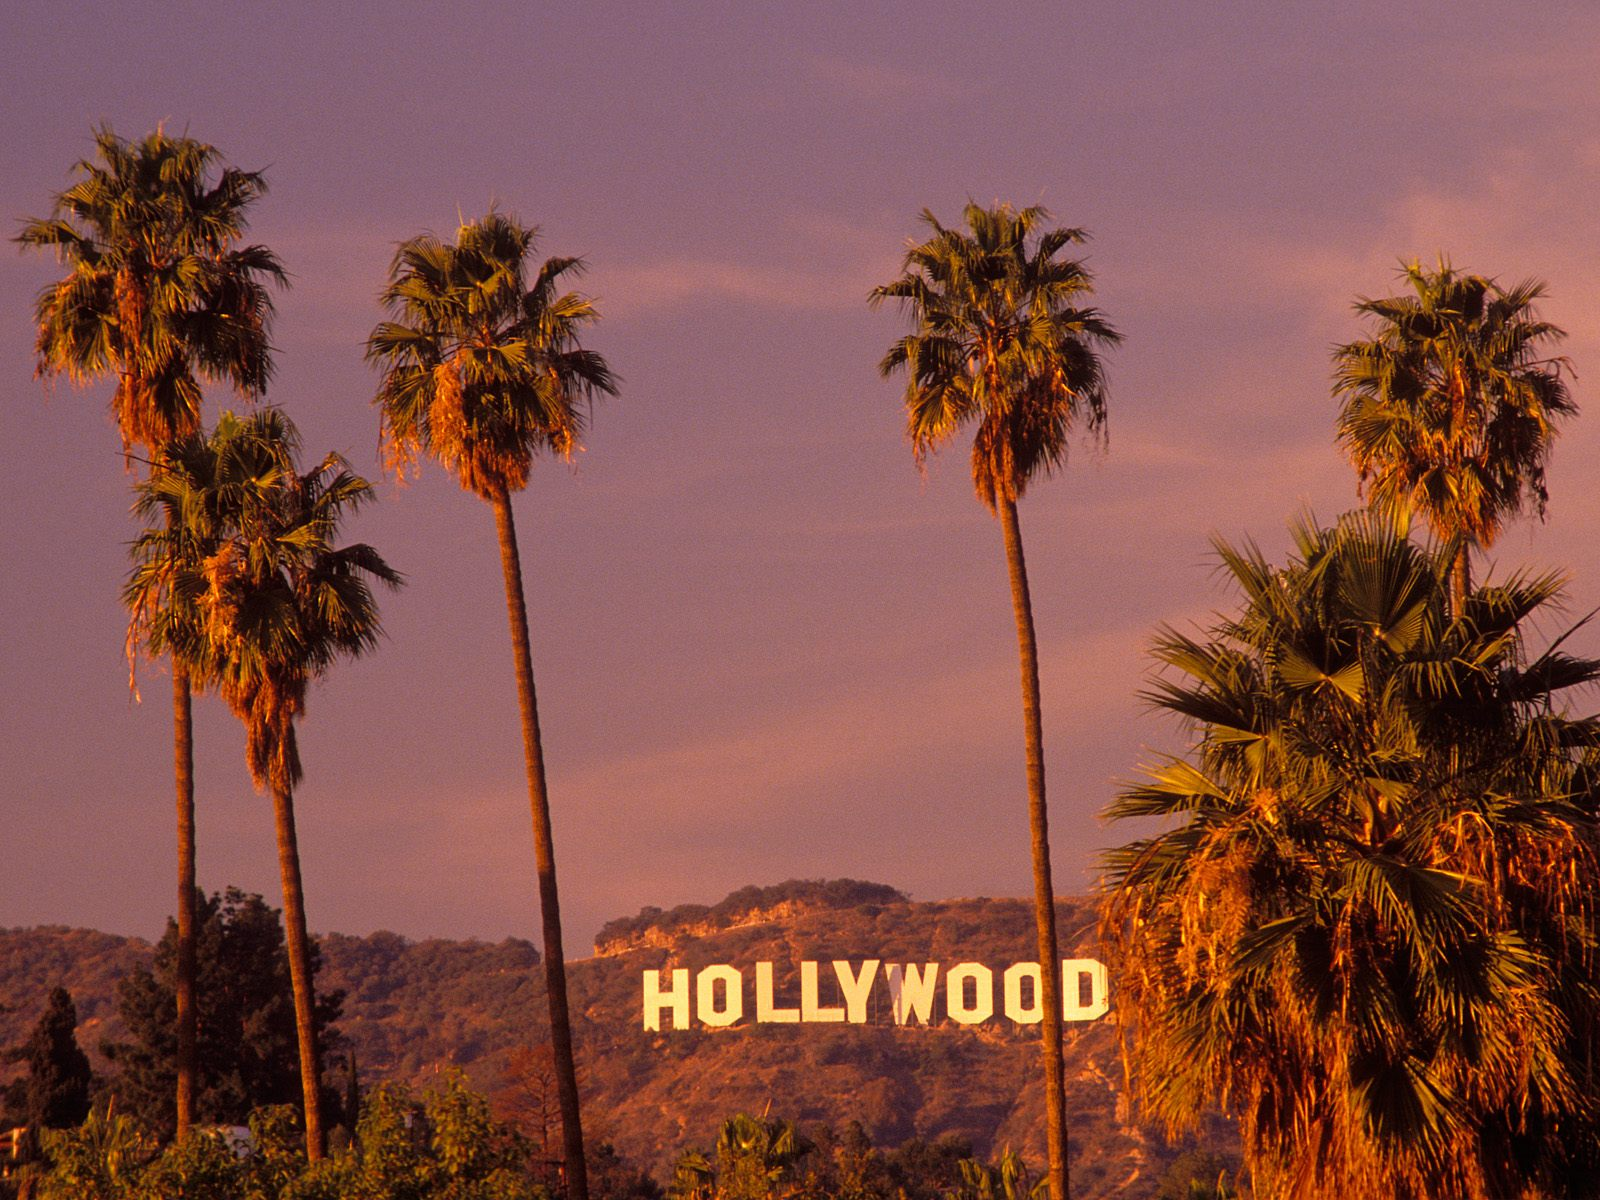 Hollywood California   Cool Backgrounds and Wallpapers 1600x1200